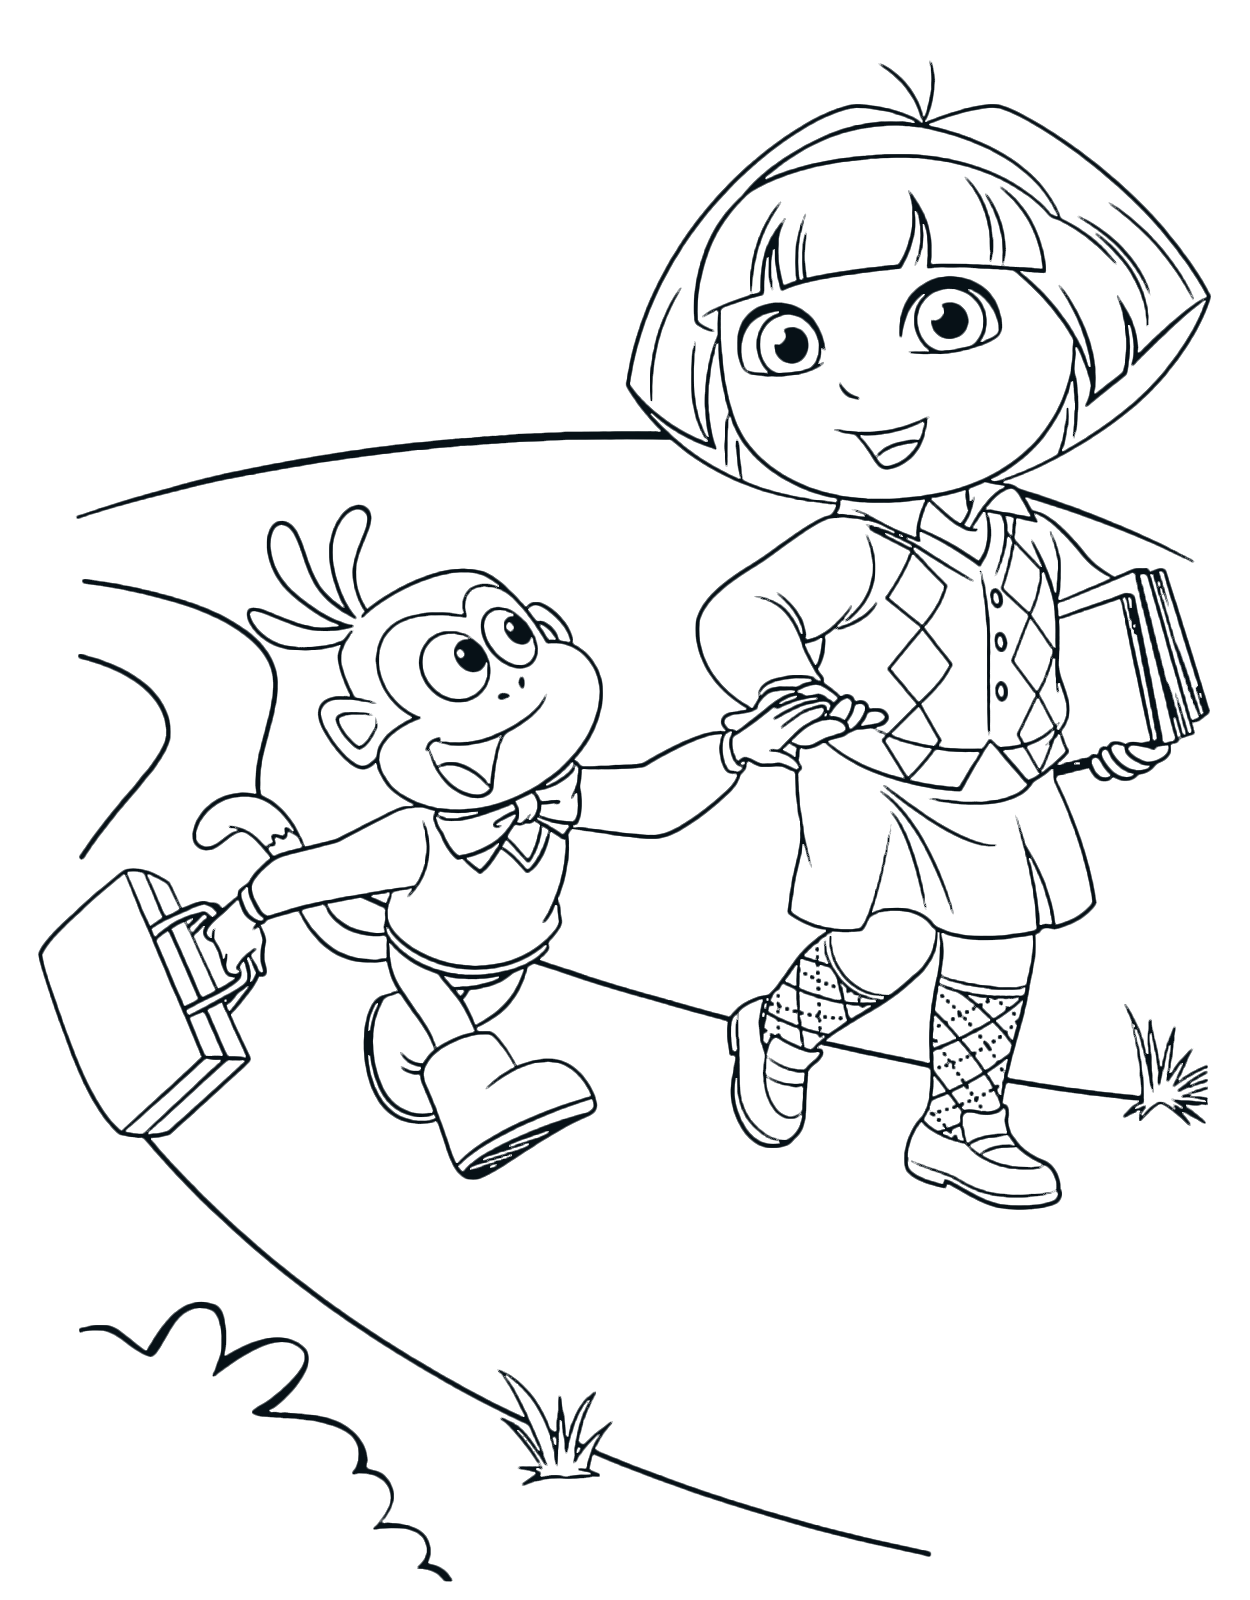 Dora the Explorer - Dora and Boots walk on the street hand in hand